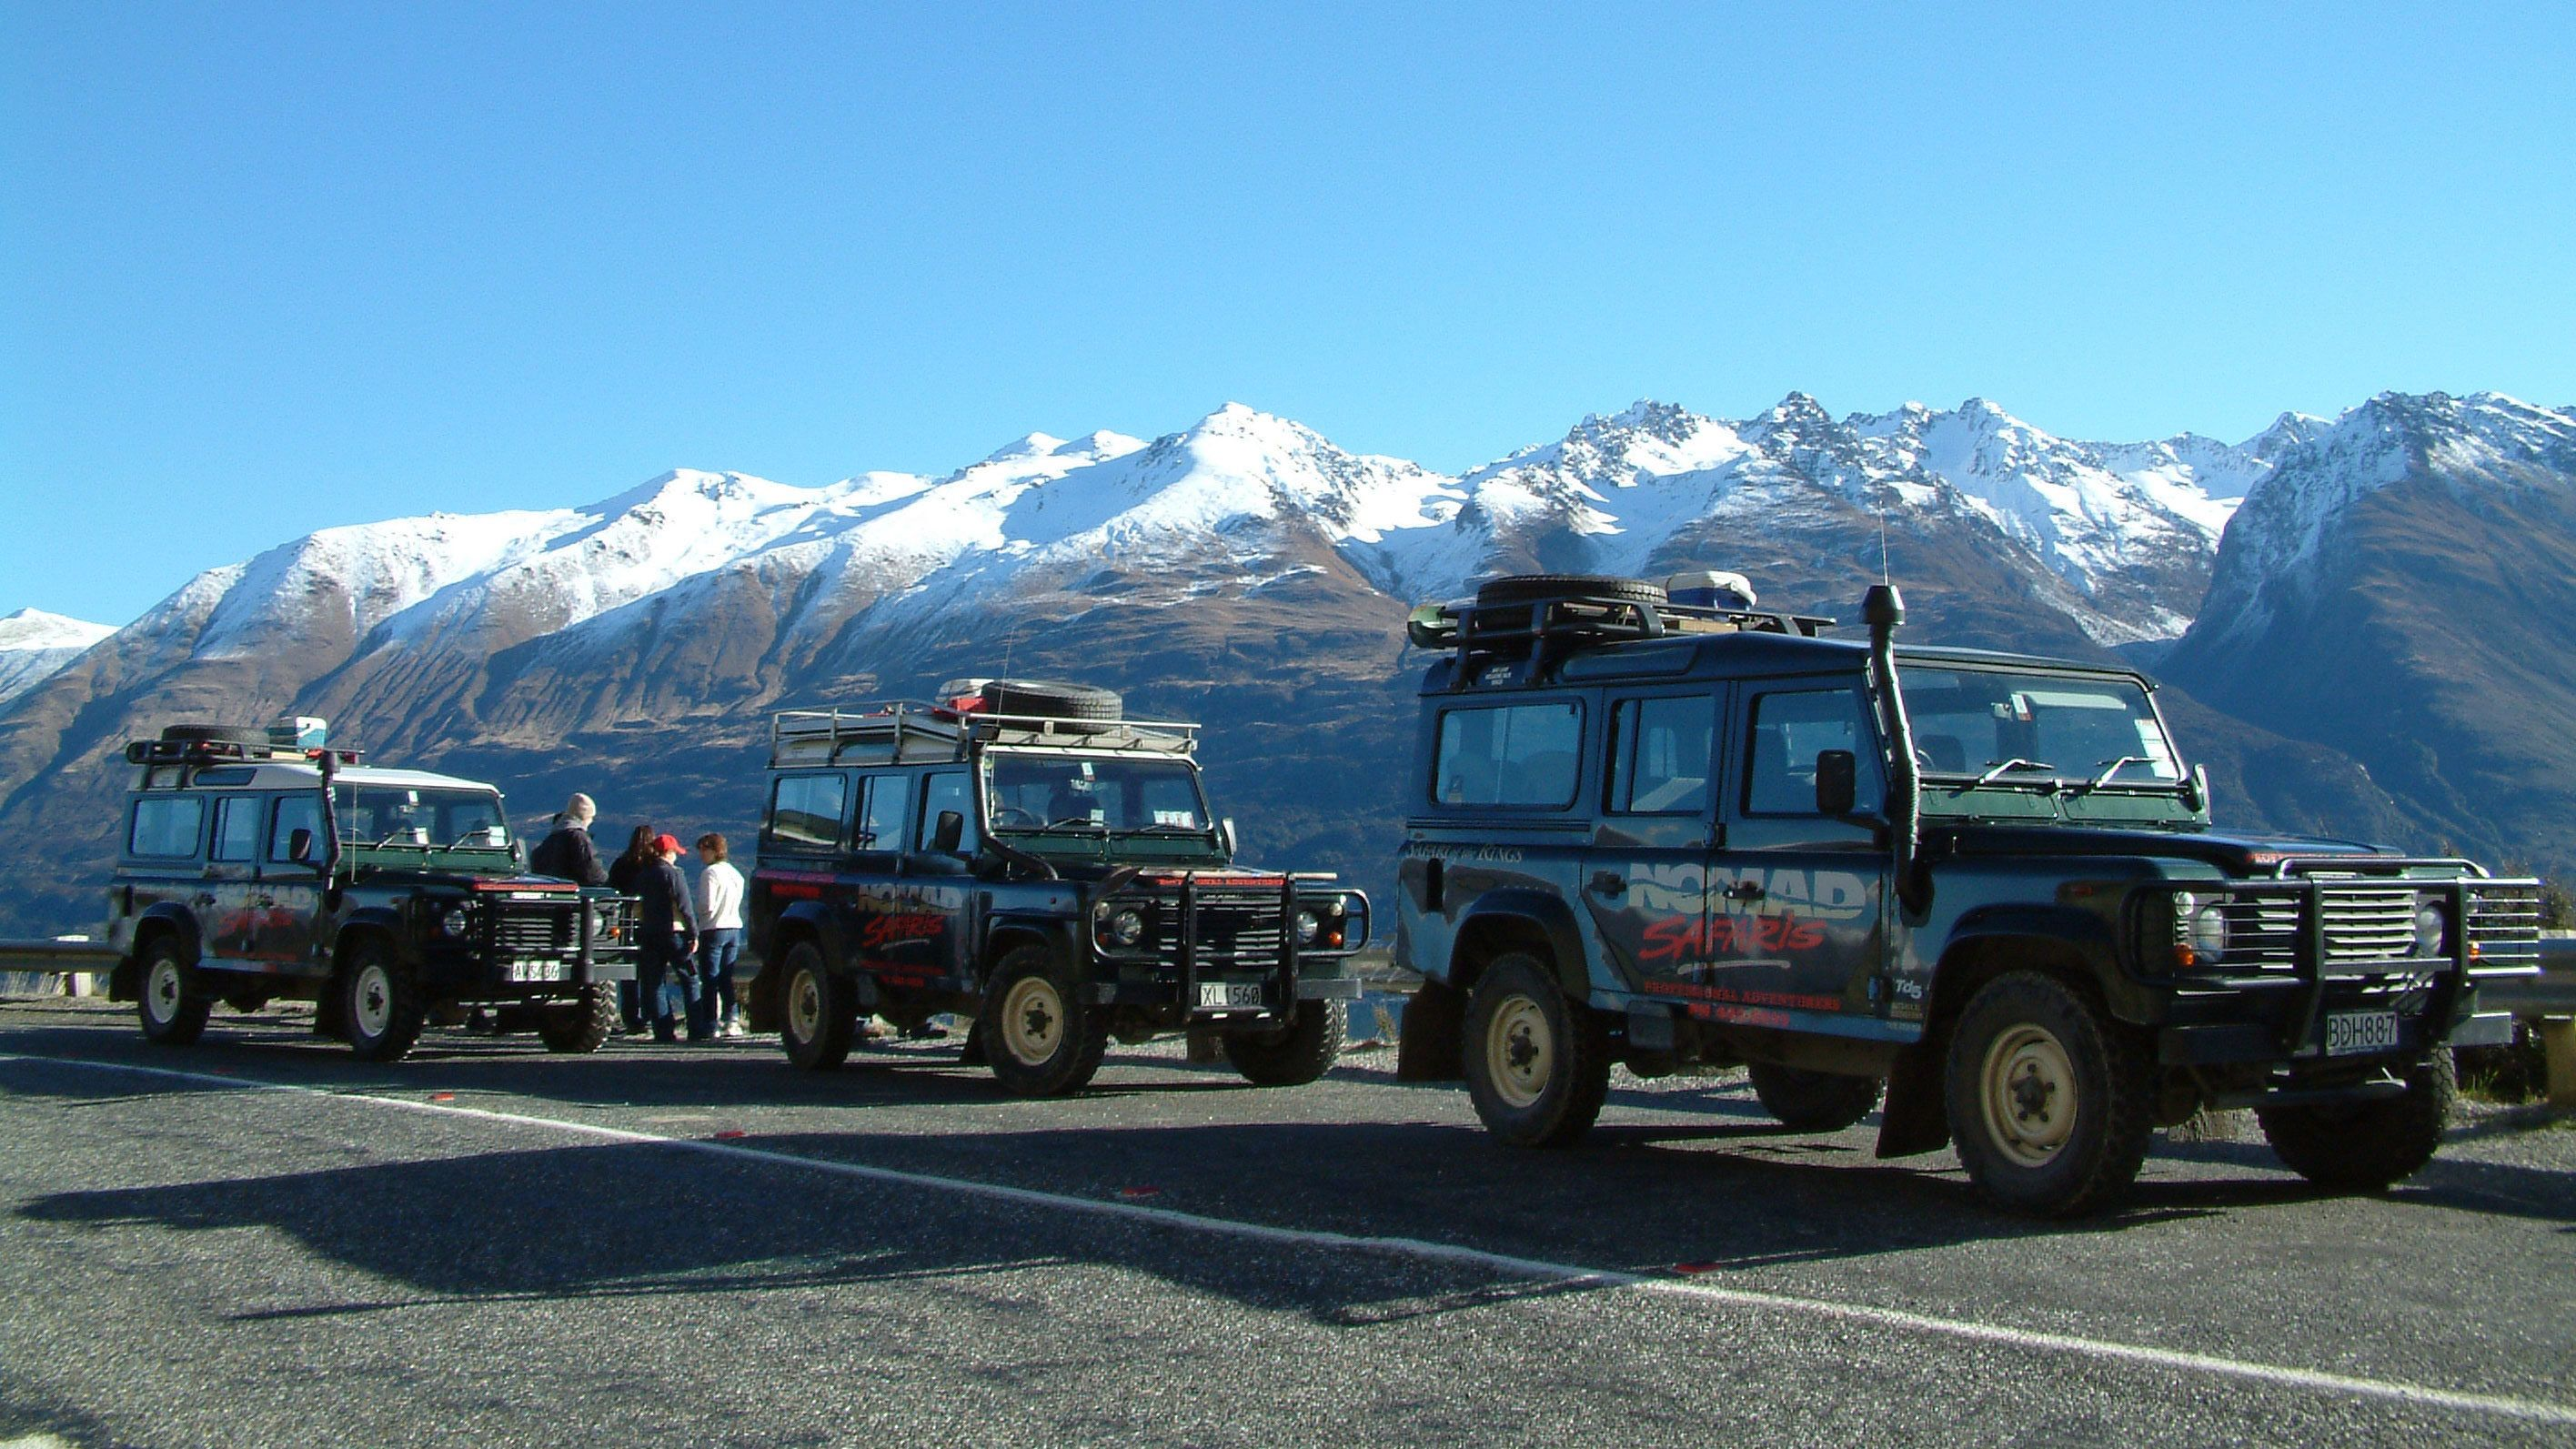 safari vehicles parked in New Zealand